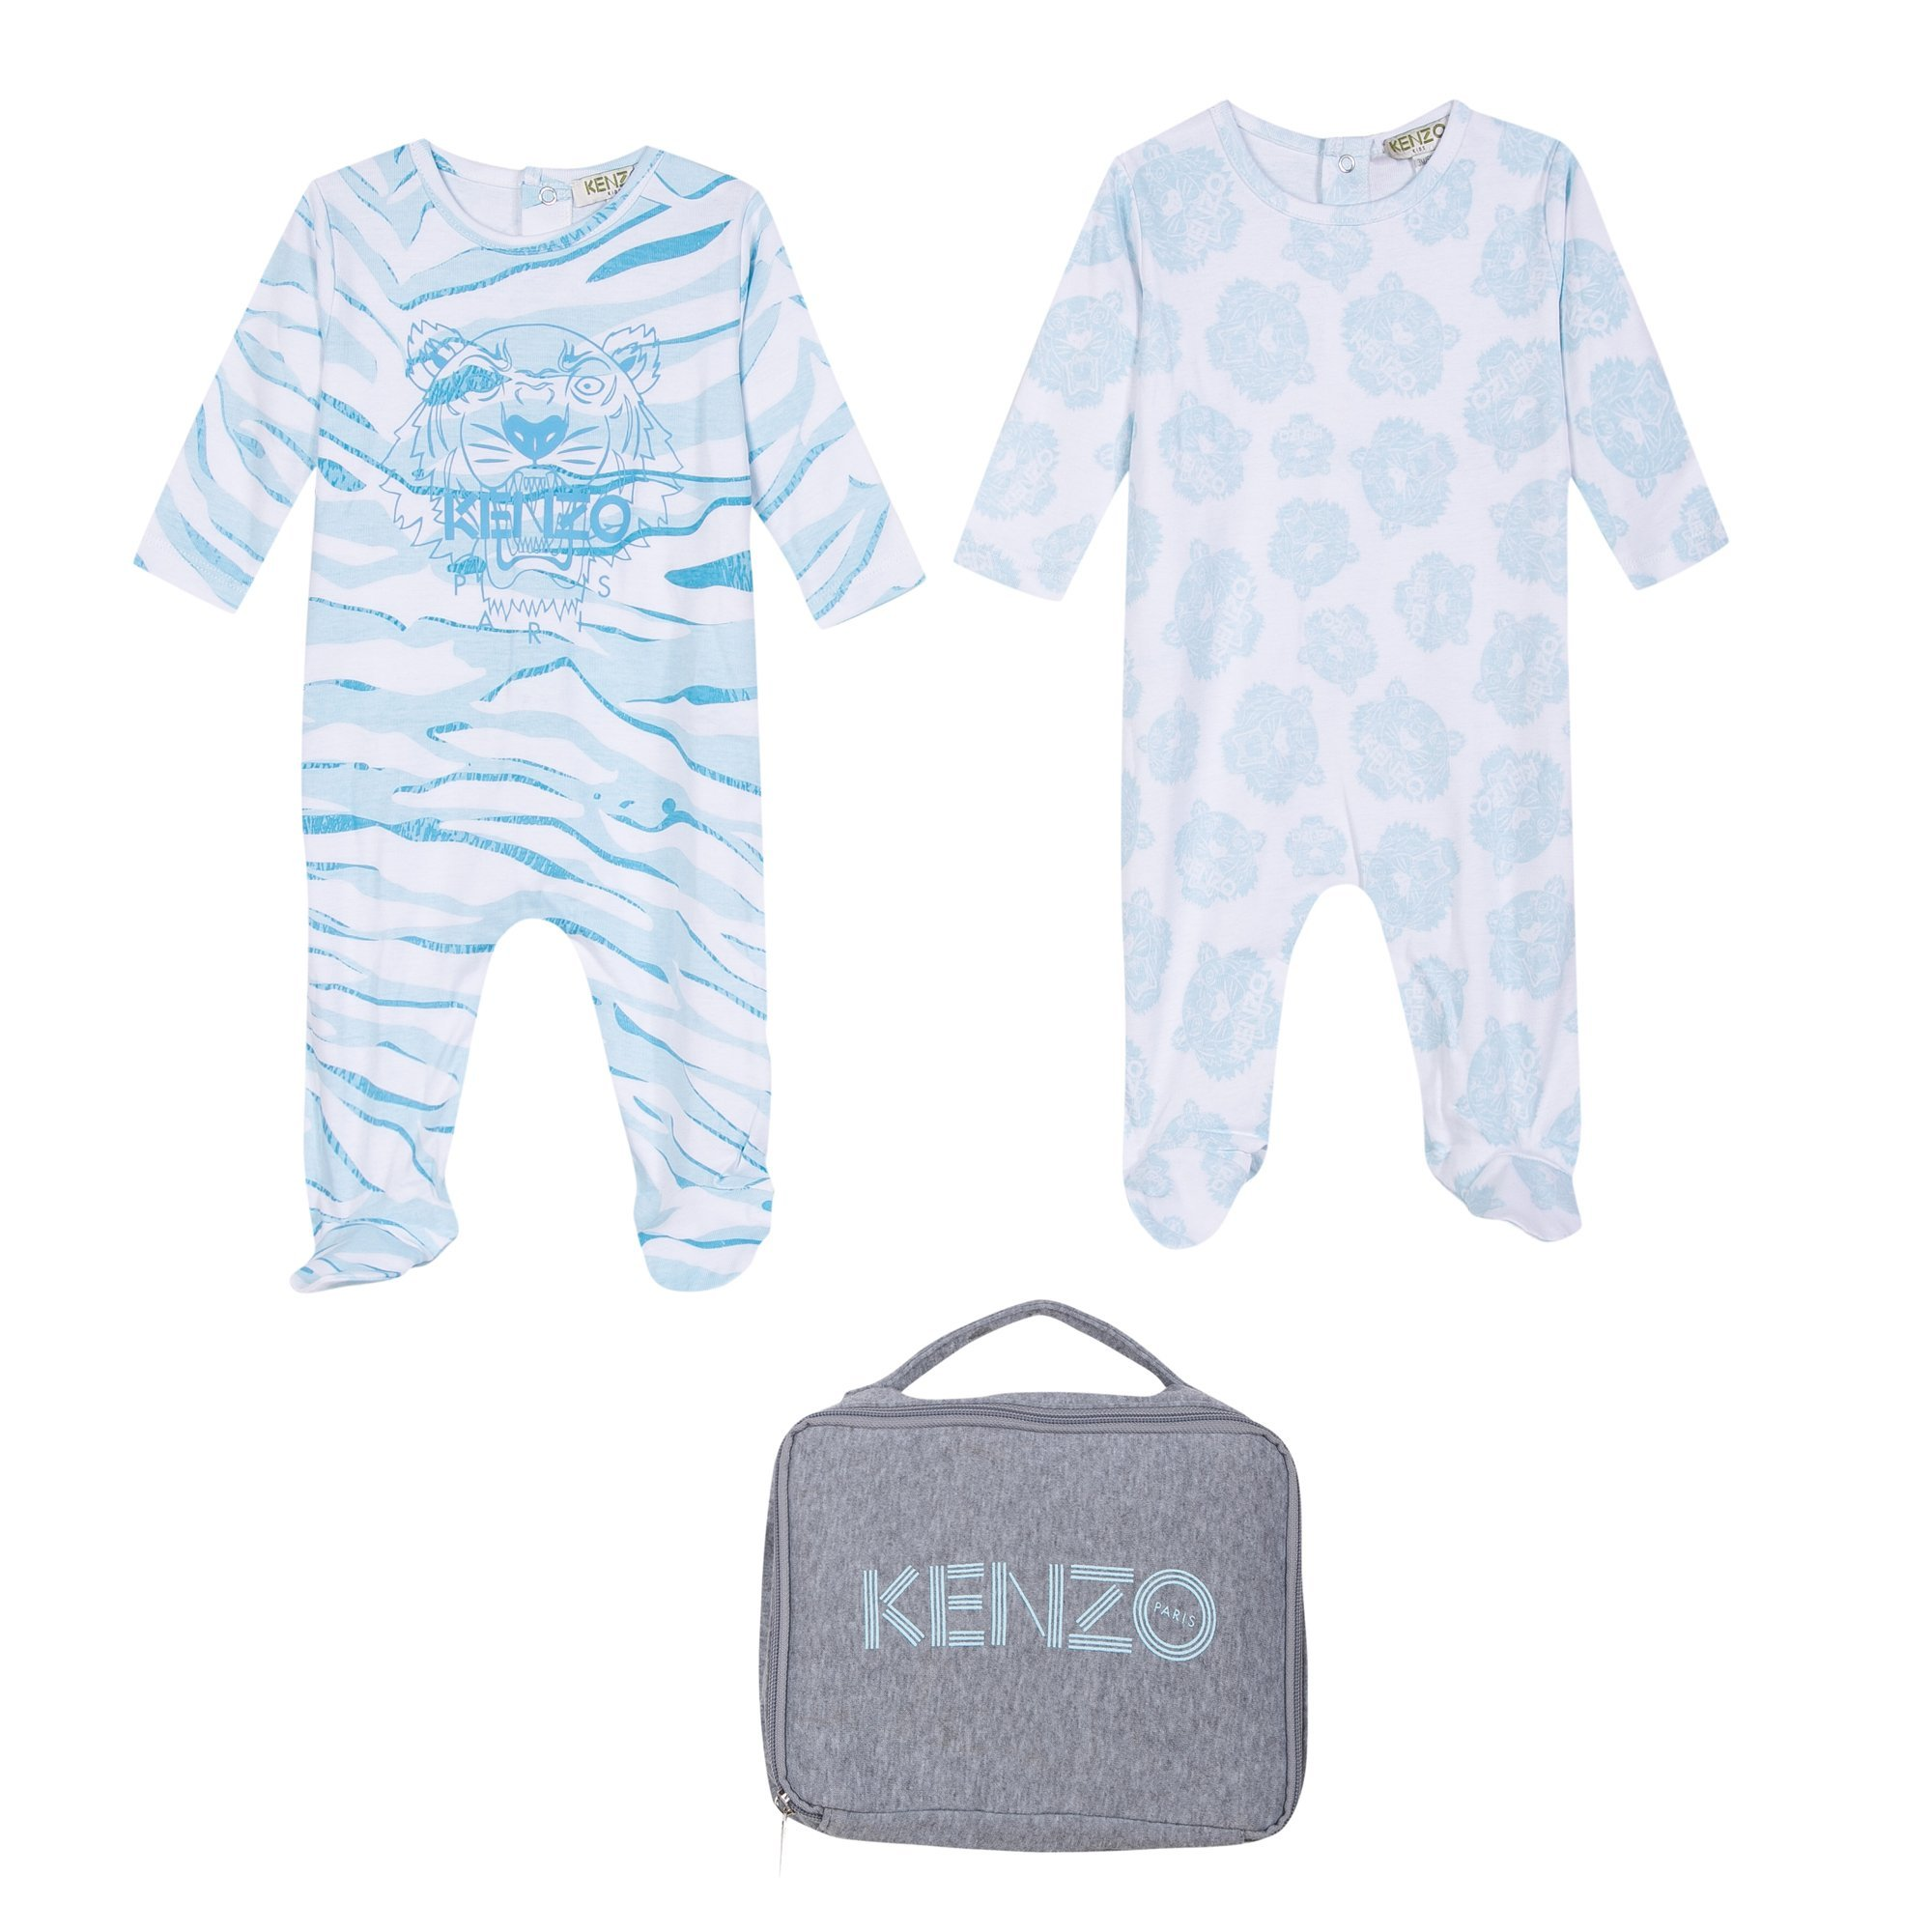 Kenzo Baby Camille Accessory Set for Boy and Girl